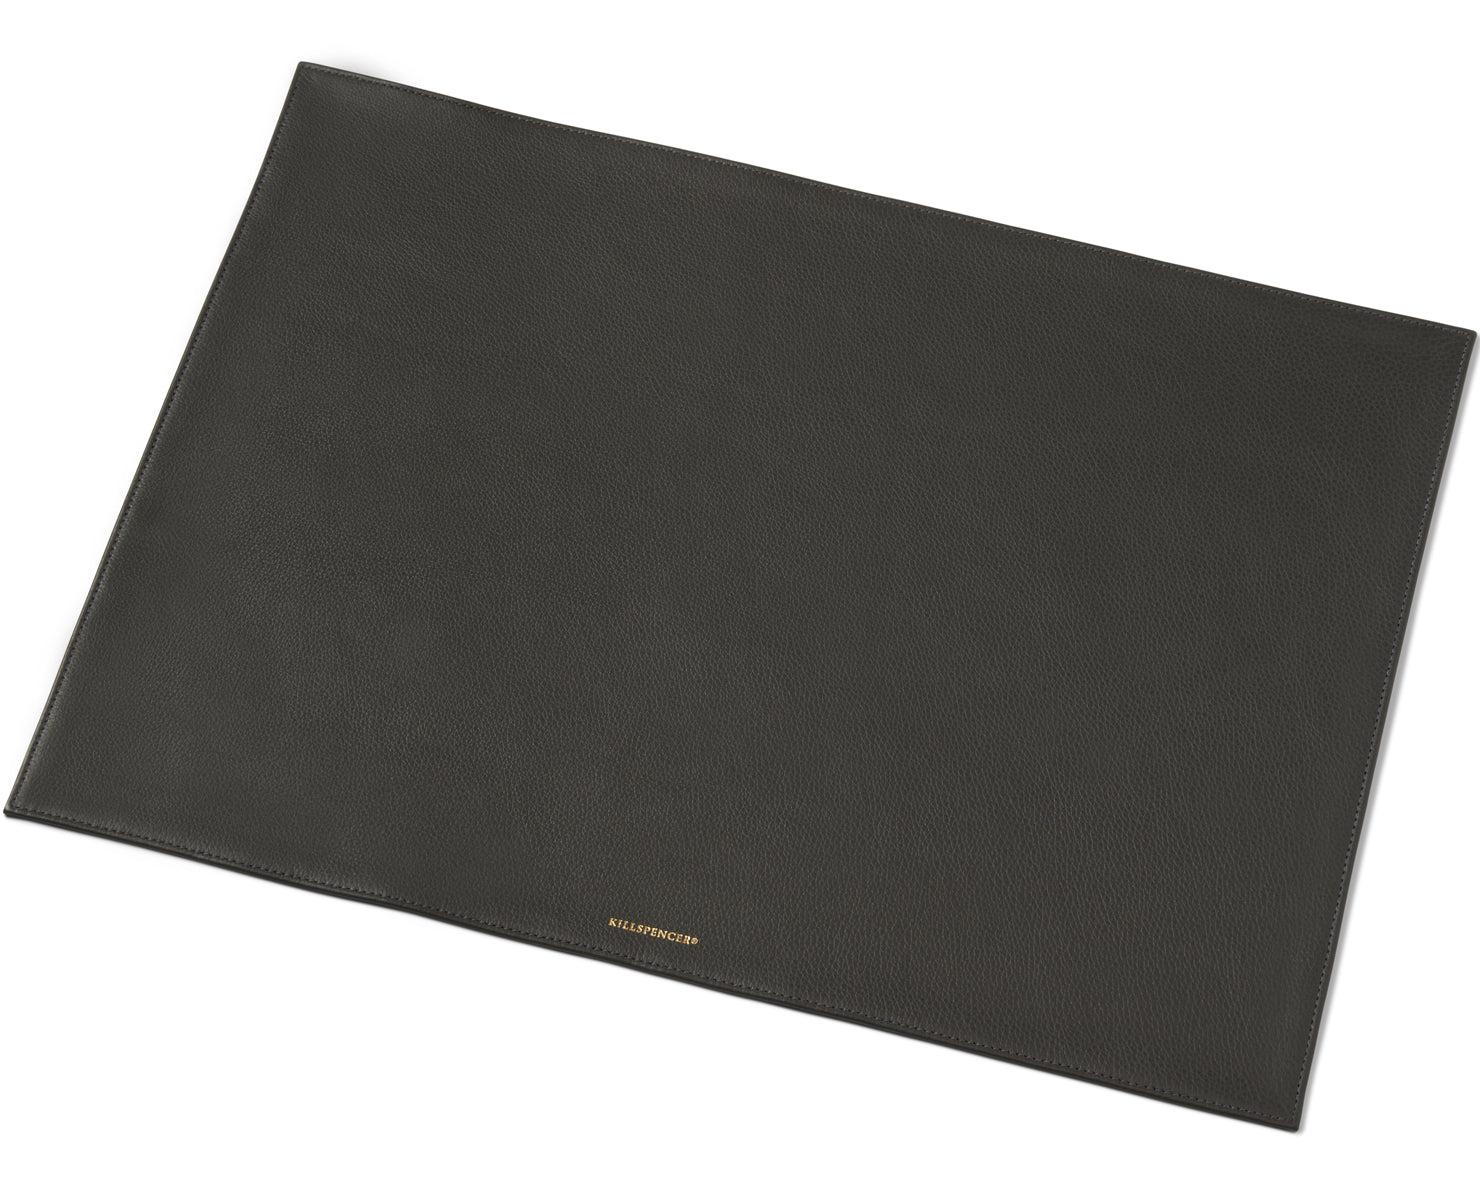 DESK MAT | KILLSPENCER® - Charcoal Grey Leather